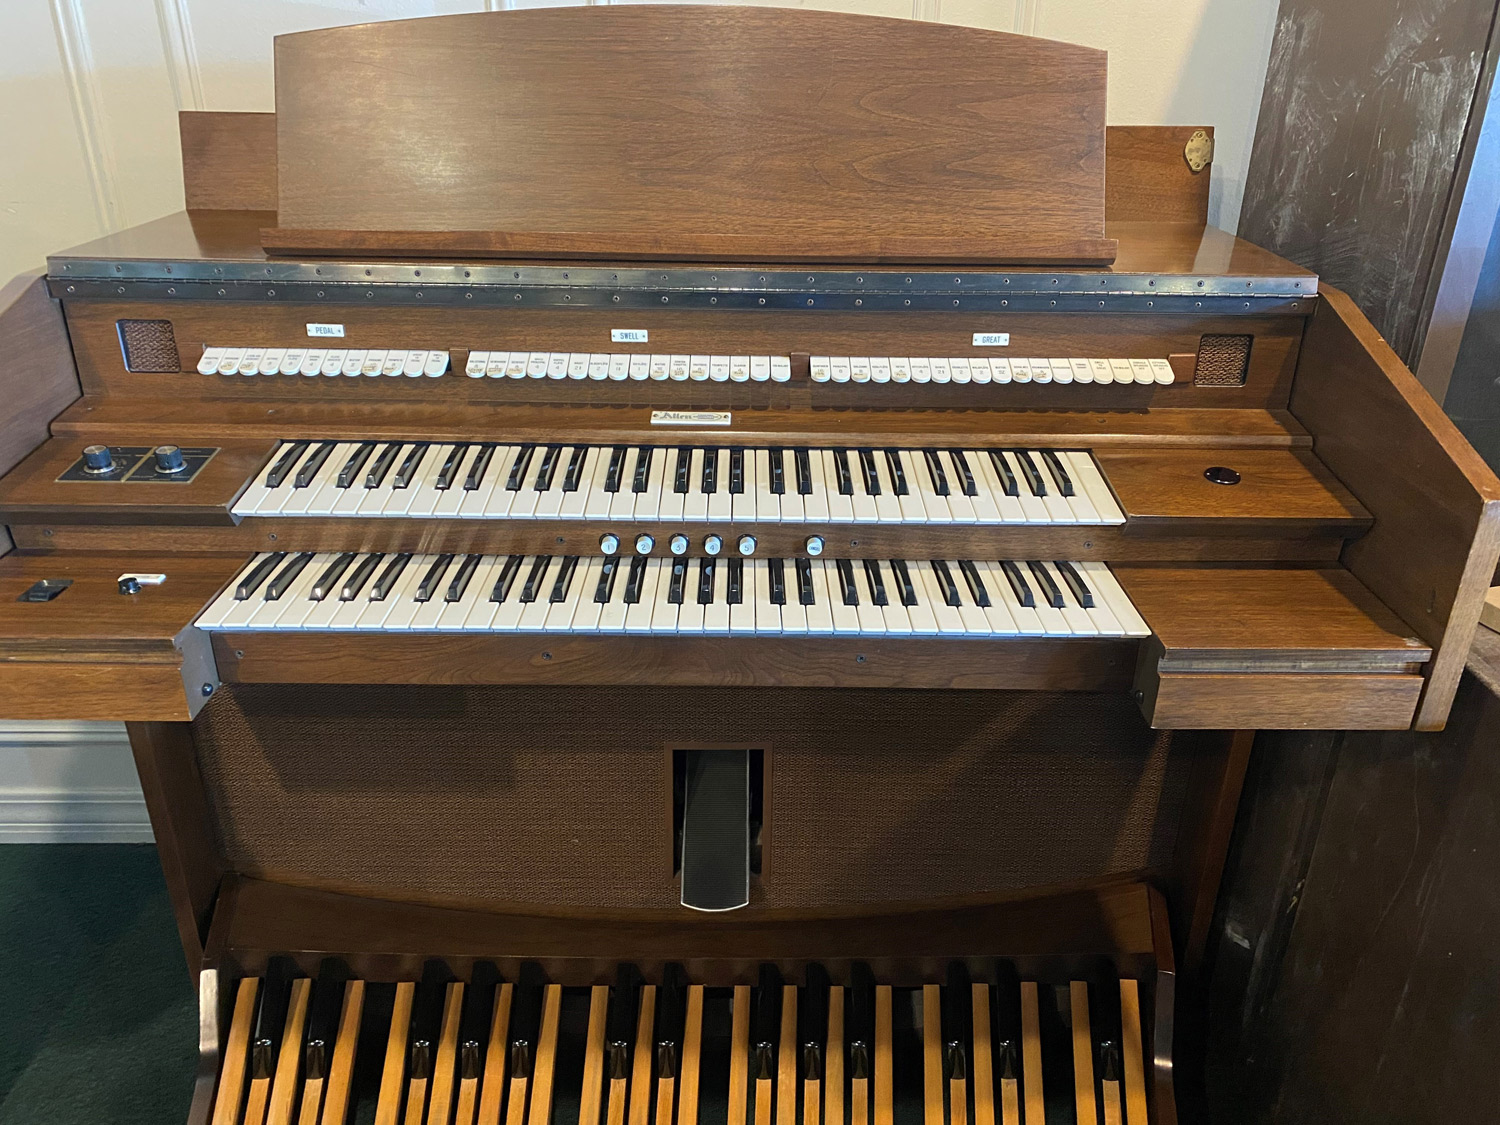 Allen Organ 282 - $2,450 - two manual, self-contained speaker system, 5 general presets